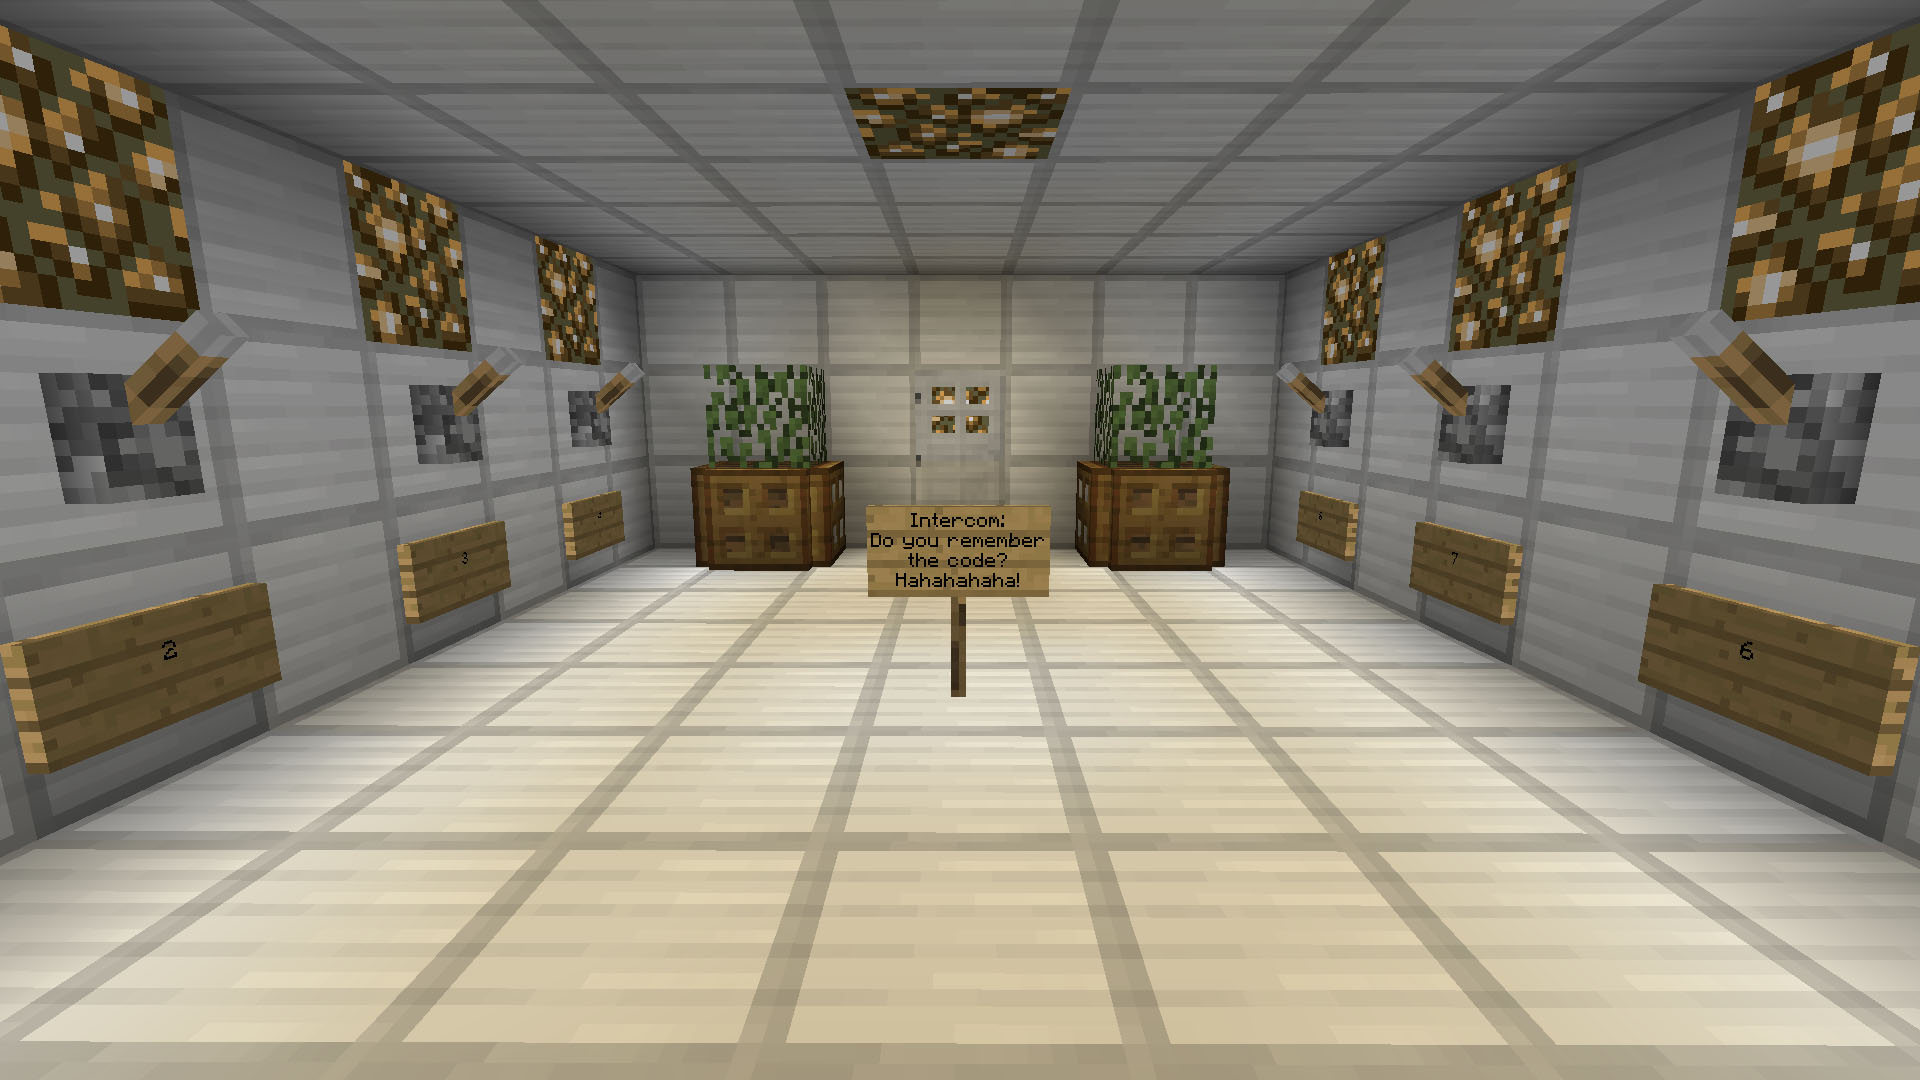 http://minecraft-forum.net/wp-content/uploads/2013/04/1a85b__Escape-The-Lab-Map-6.jpg